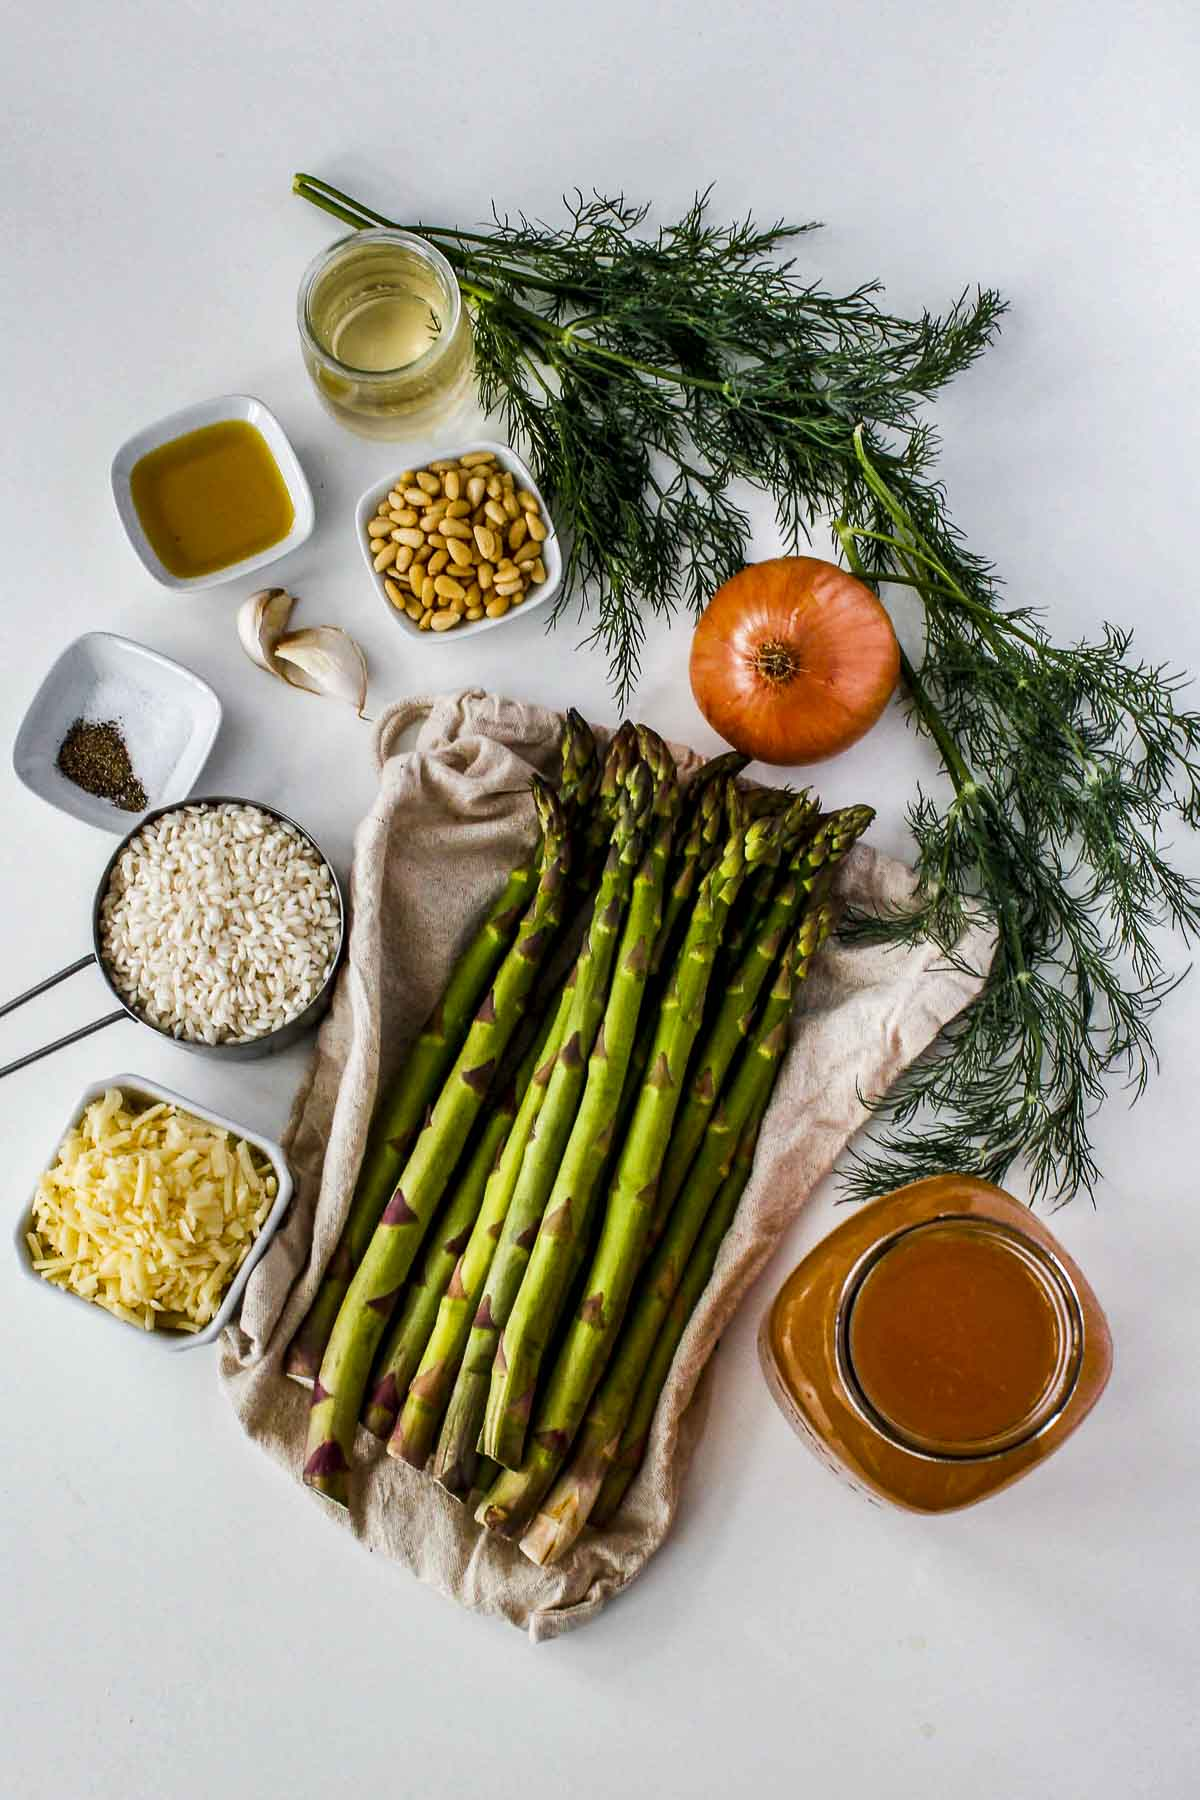 Overhead view of ingredients needed to make asparagus risotto.